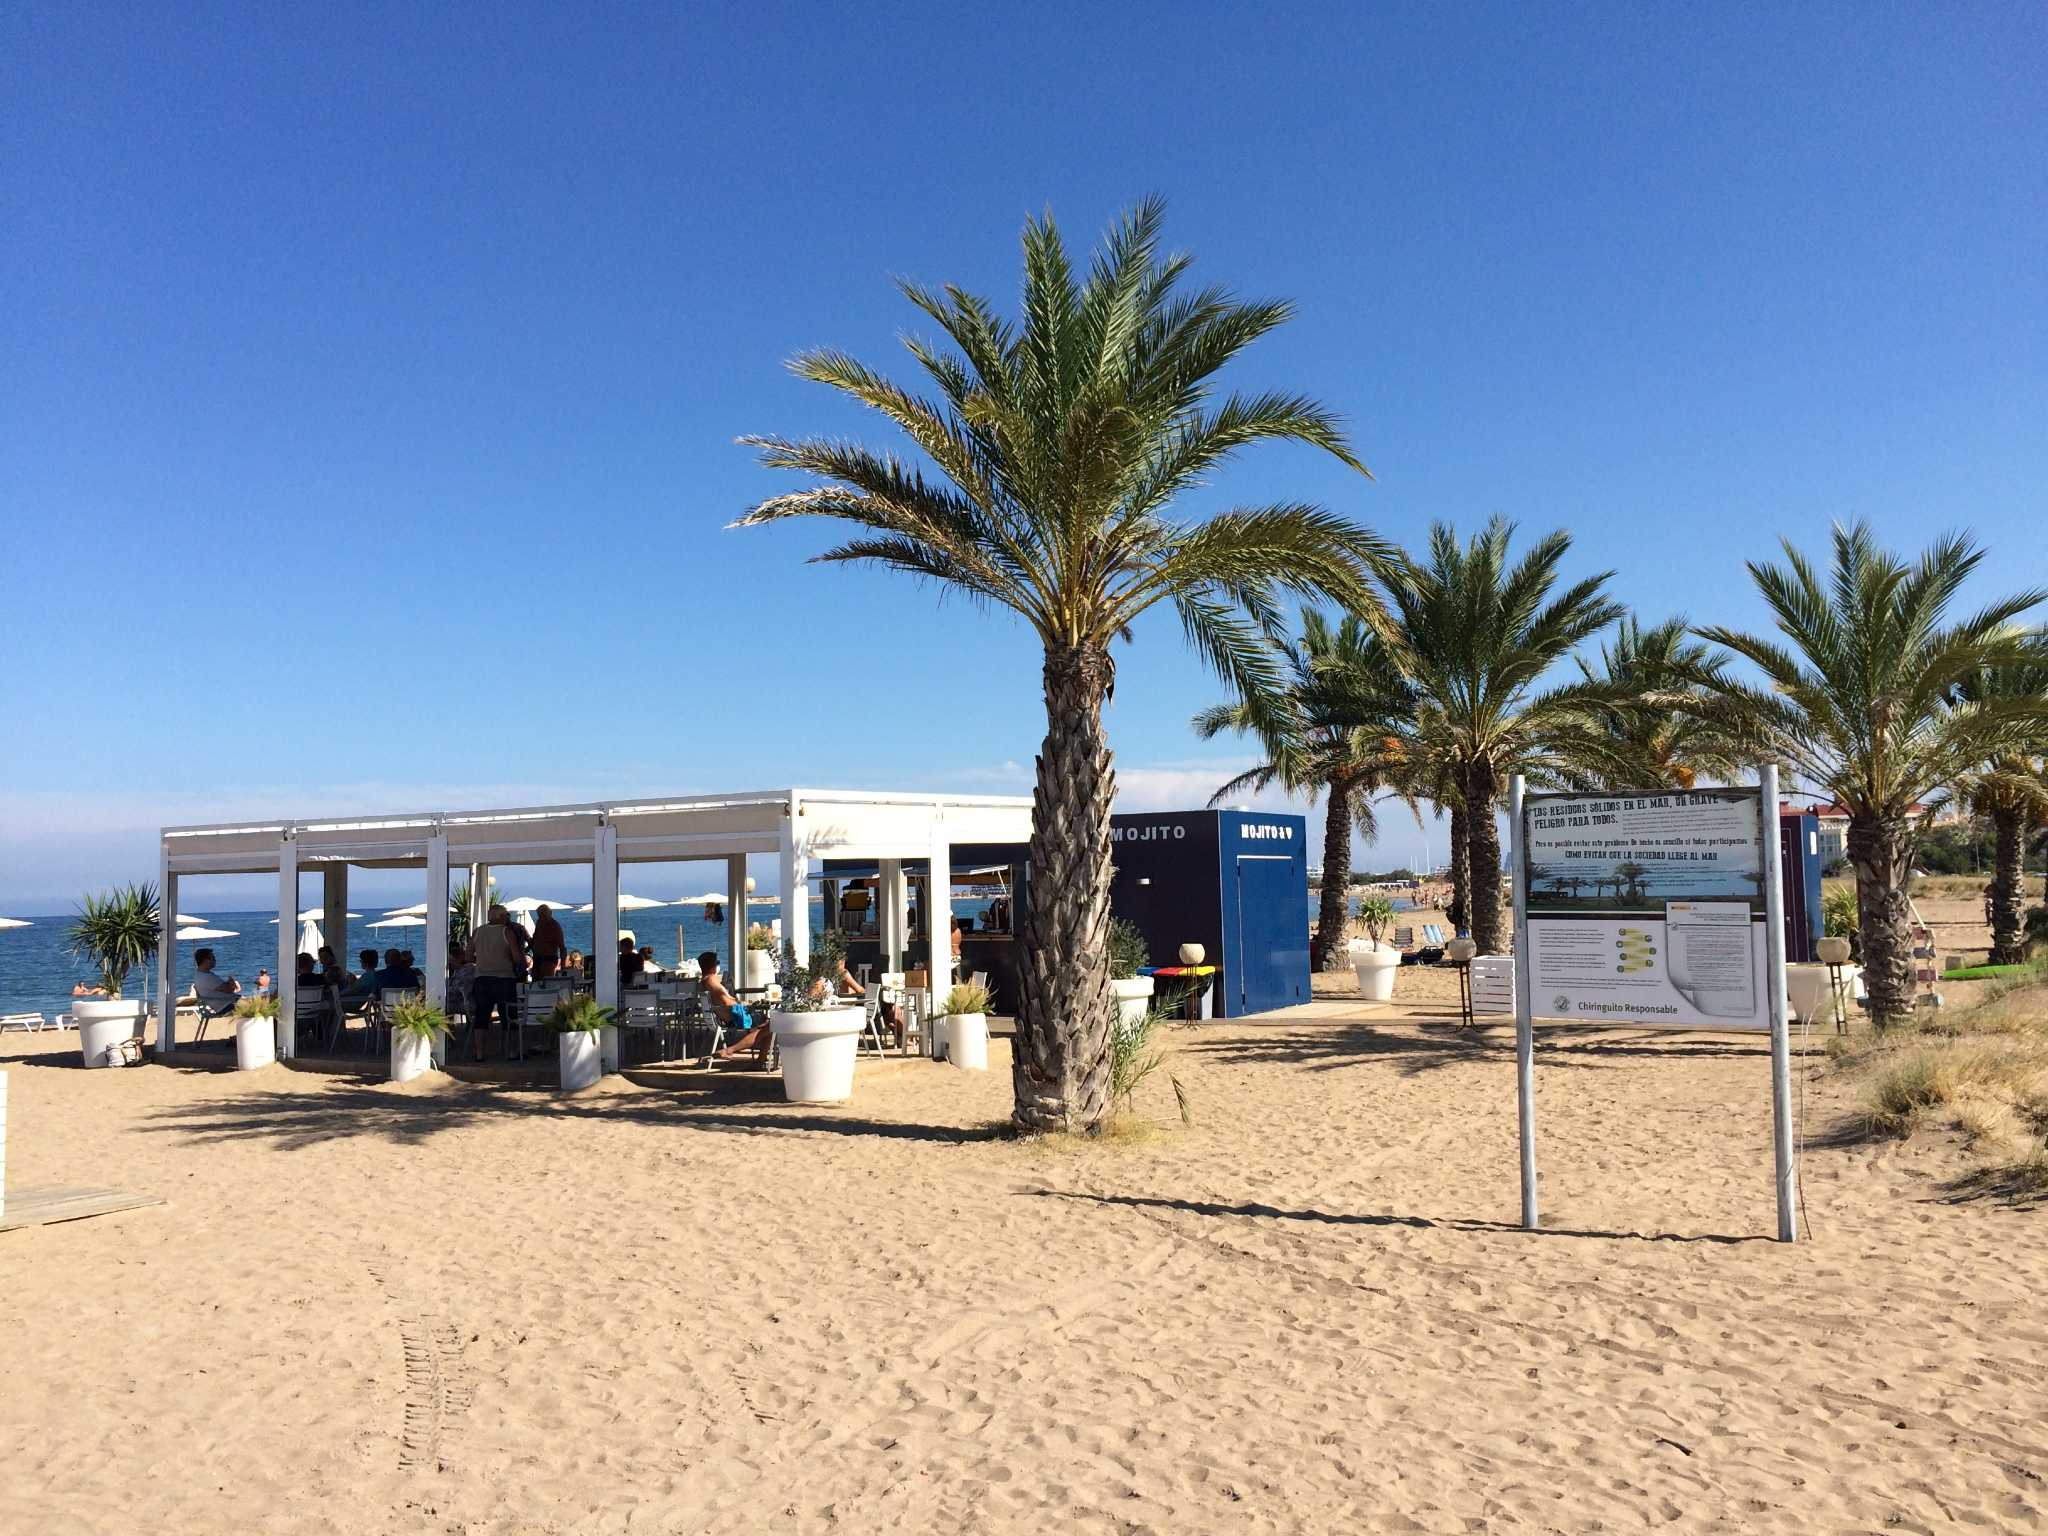 Strandbar am Playa El Raset